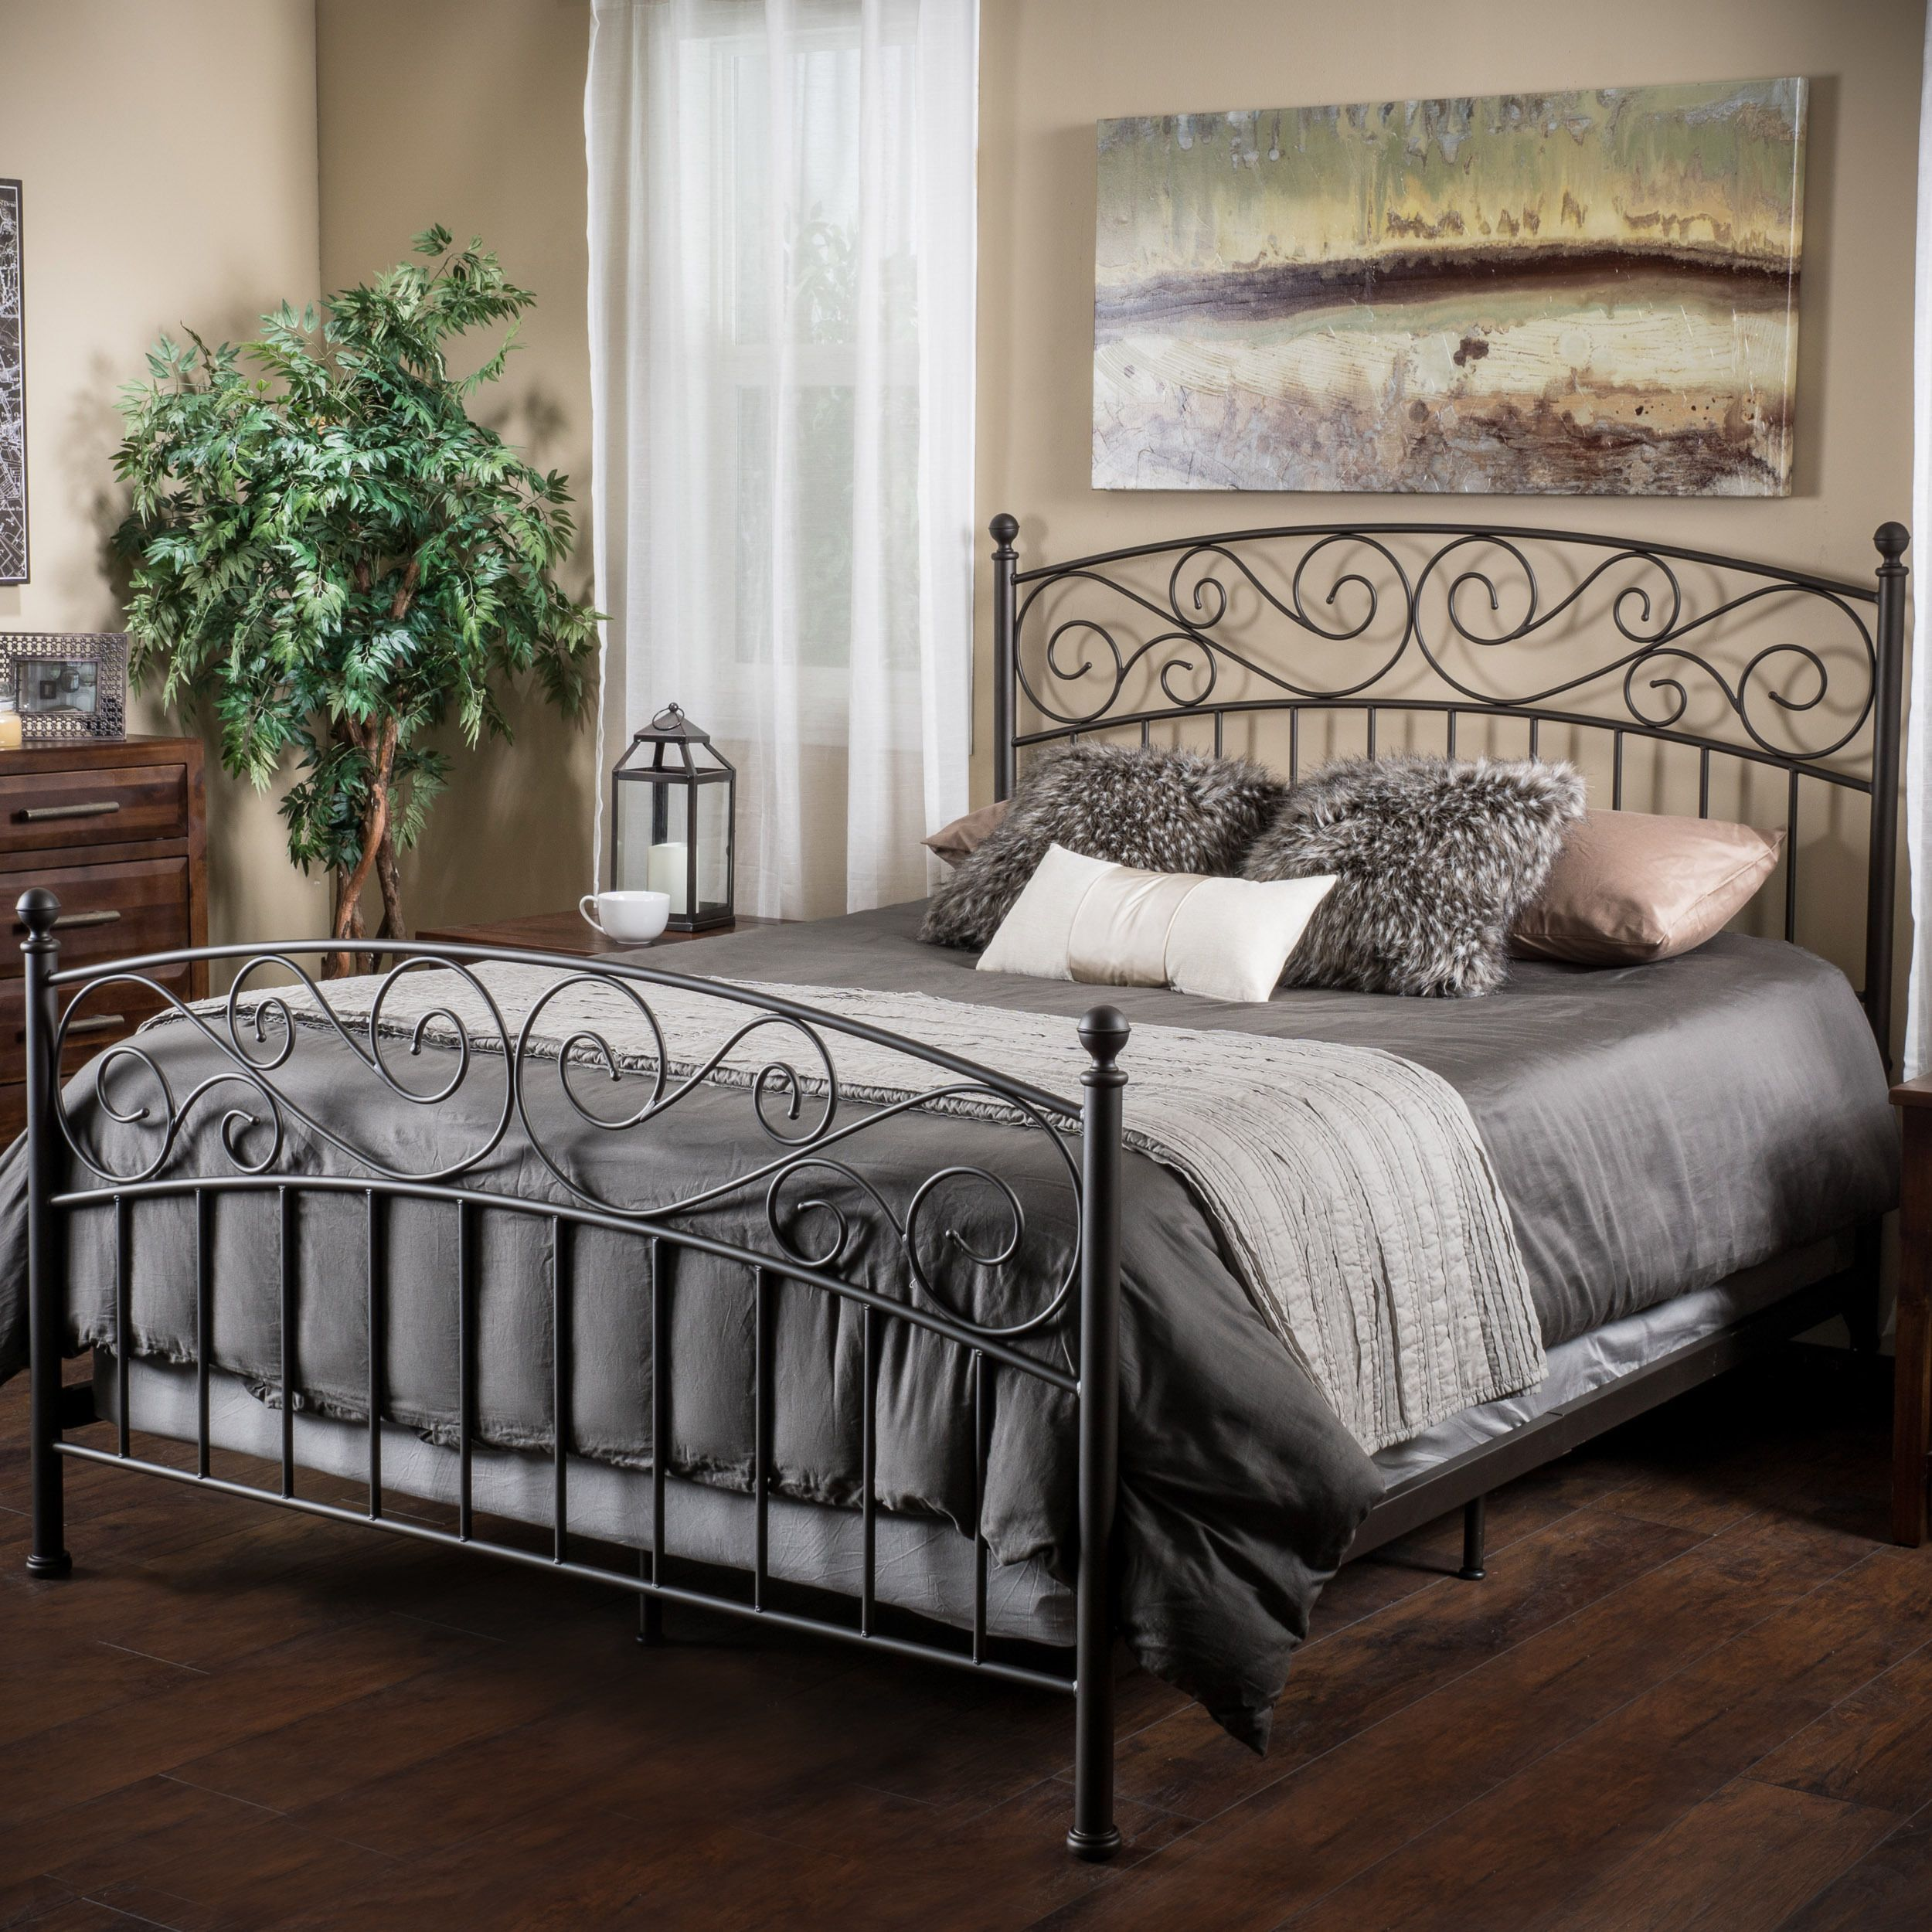 Online Shopping Bedding Furniture Electronics Jewelry Clothing More Iron Bed Frame